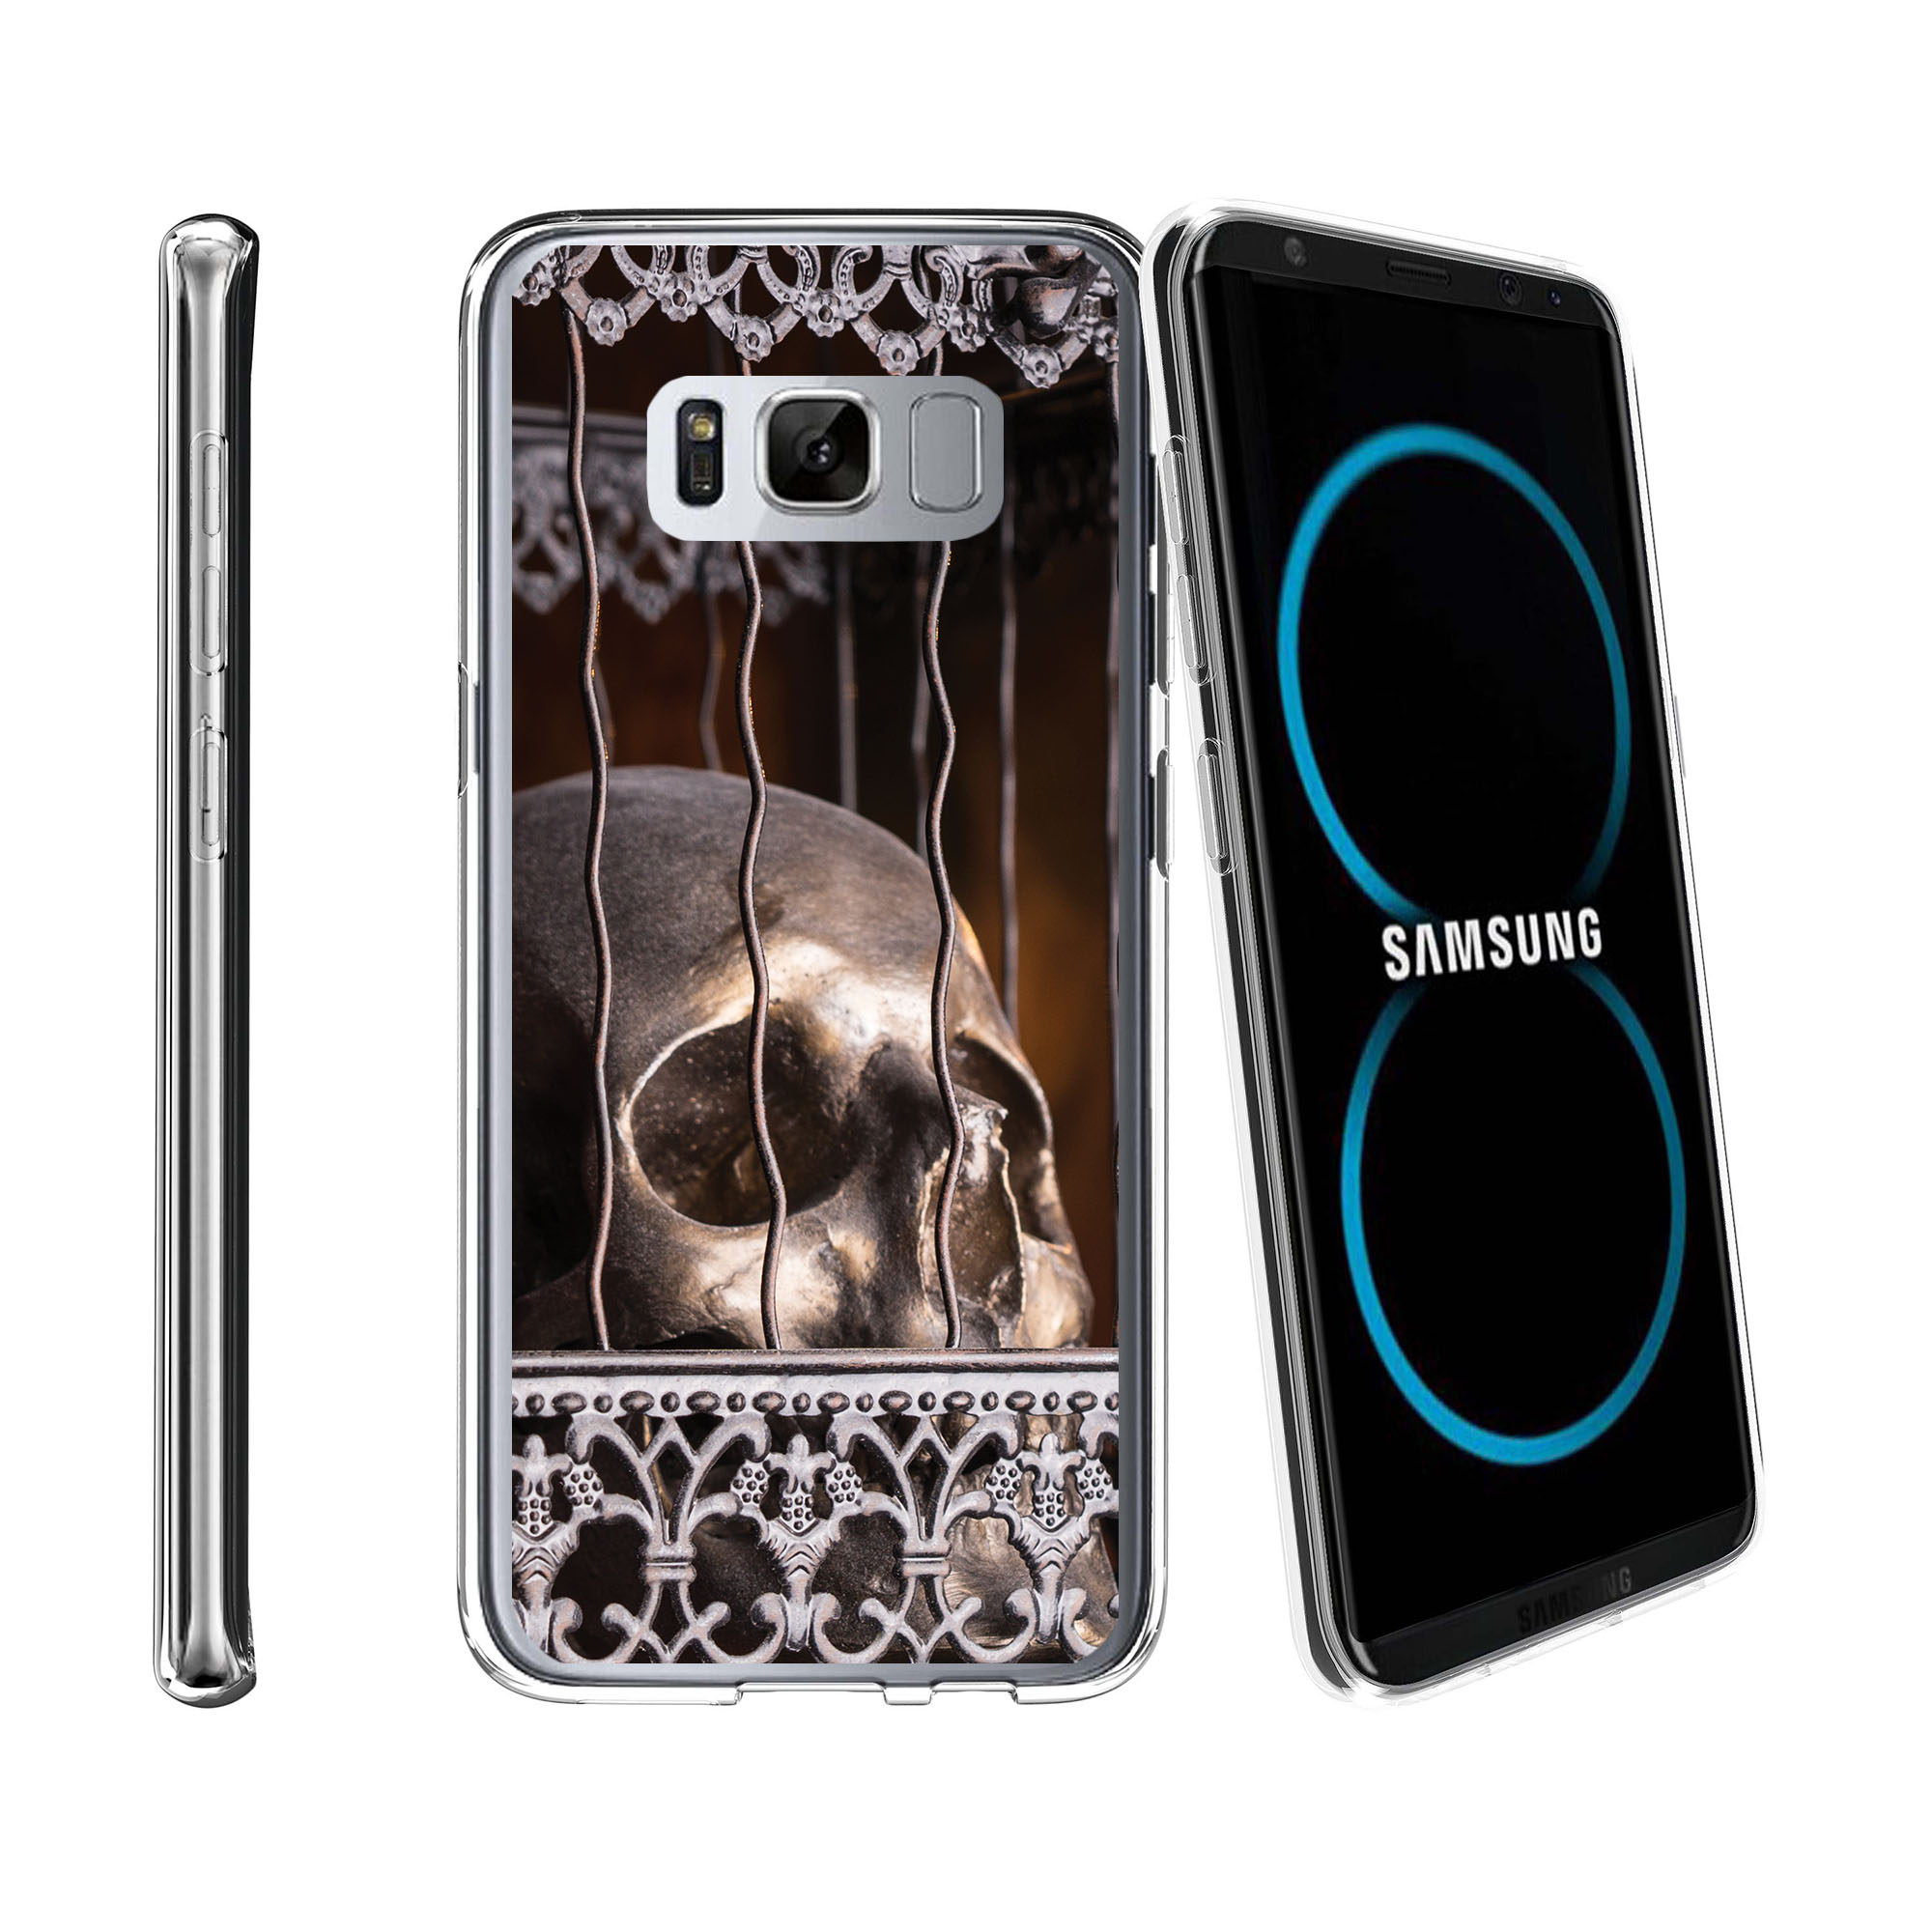 Case for Samsung Galaxy S8 Plus | Galaxy S8 Plus Transparent Silicone Case [ Flex Force ] Flexible Clear Case Skull Collection